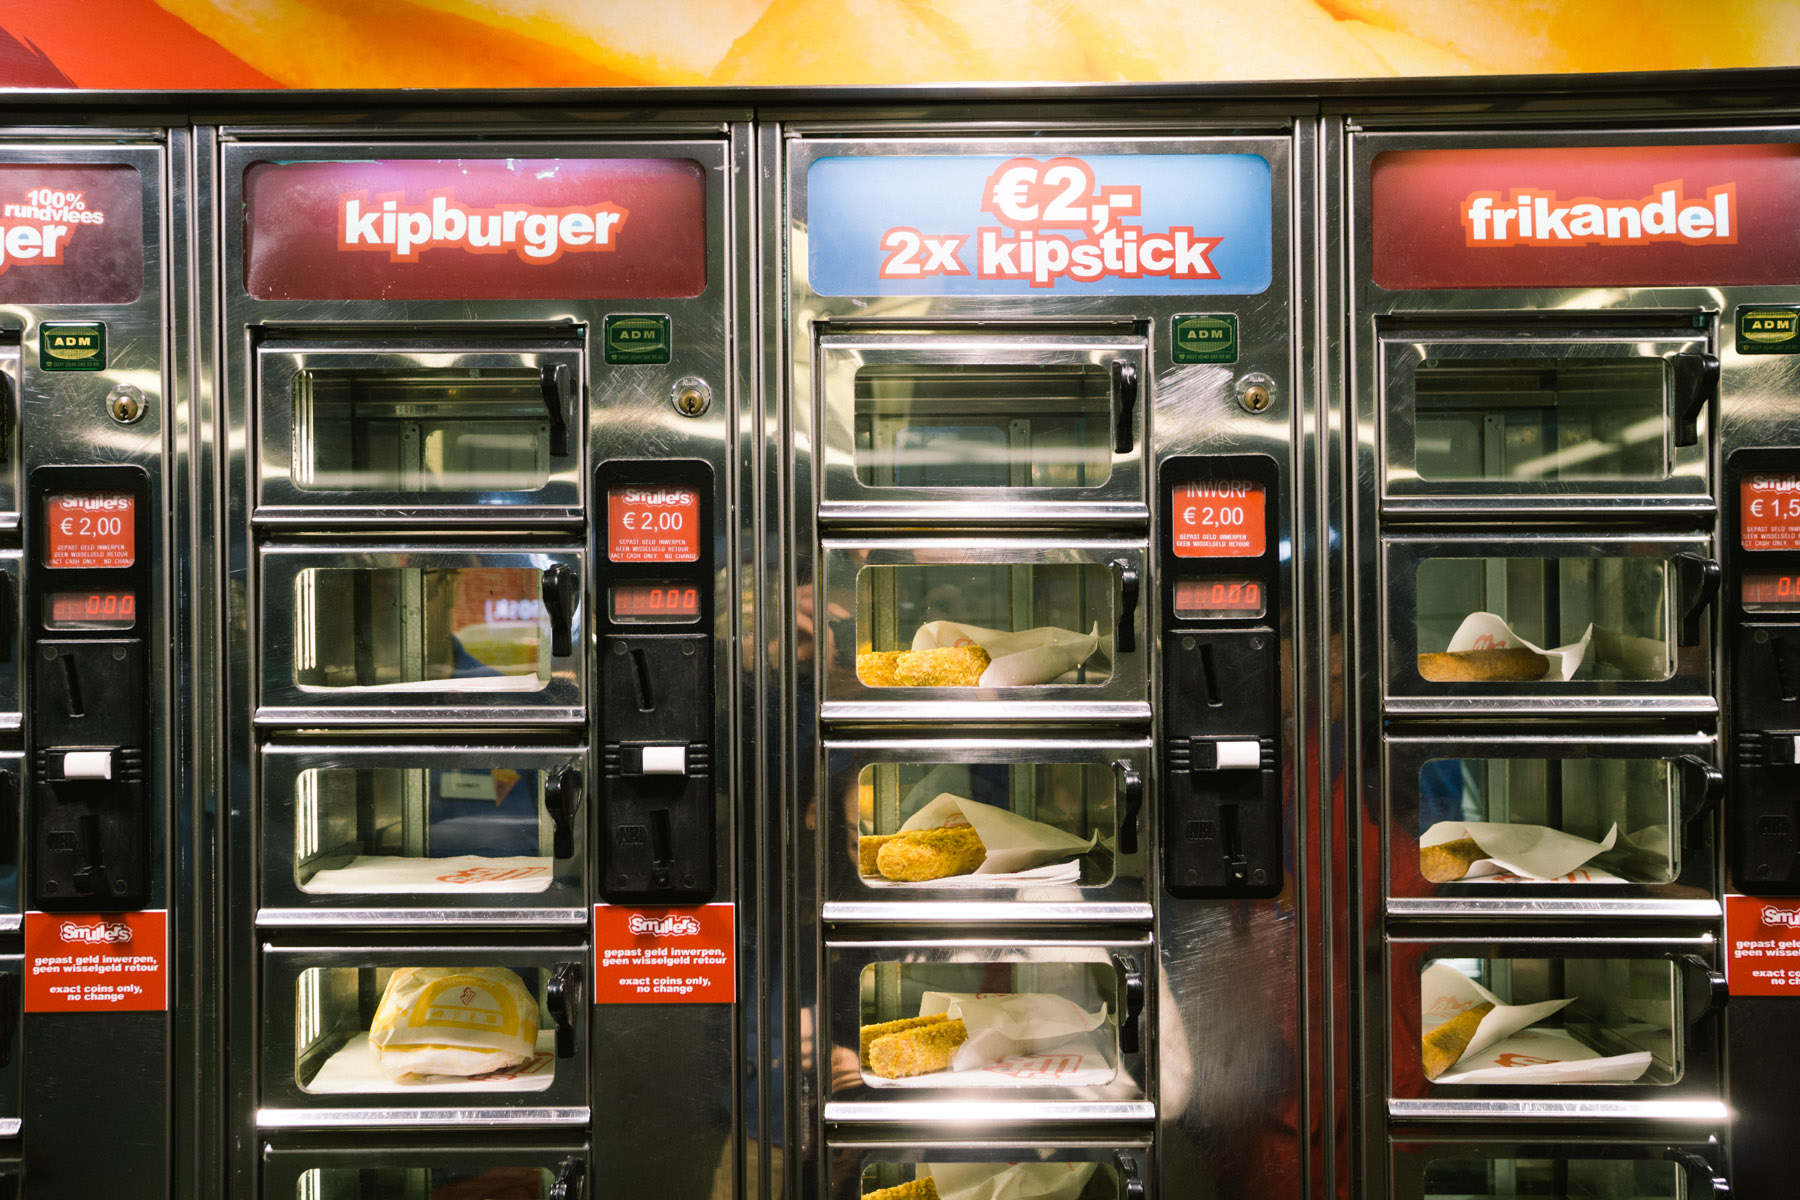 amsterdam-smullers-febo-fast-food-vending-machine-automatiek-croquette-burger-fries-2